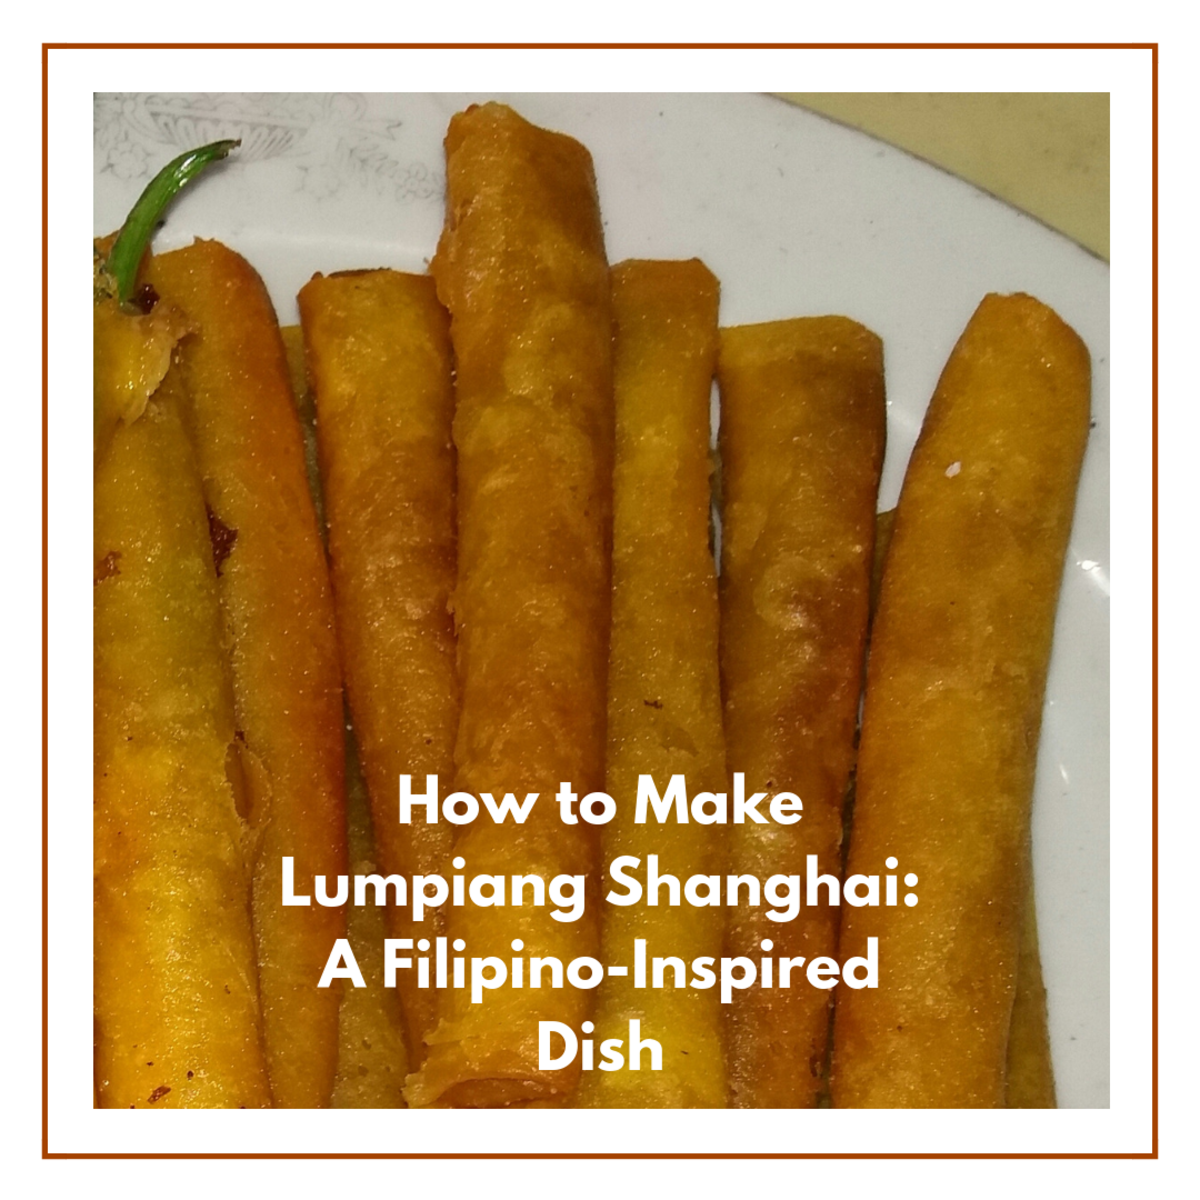 Learn how to make lumpiang Shanghai, a Filipino-inspired dish.